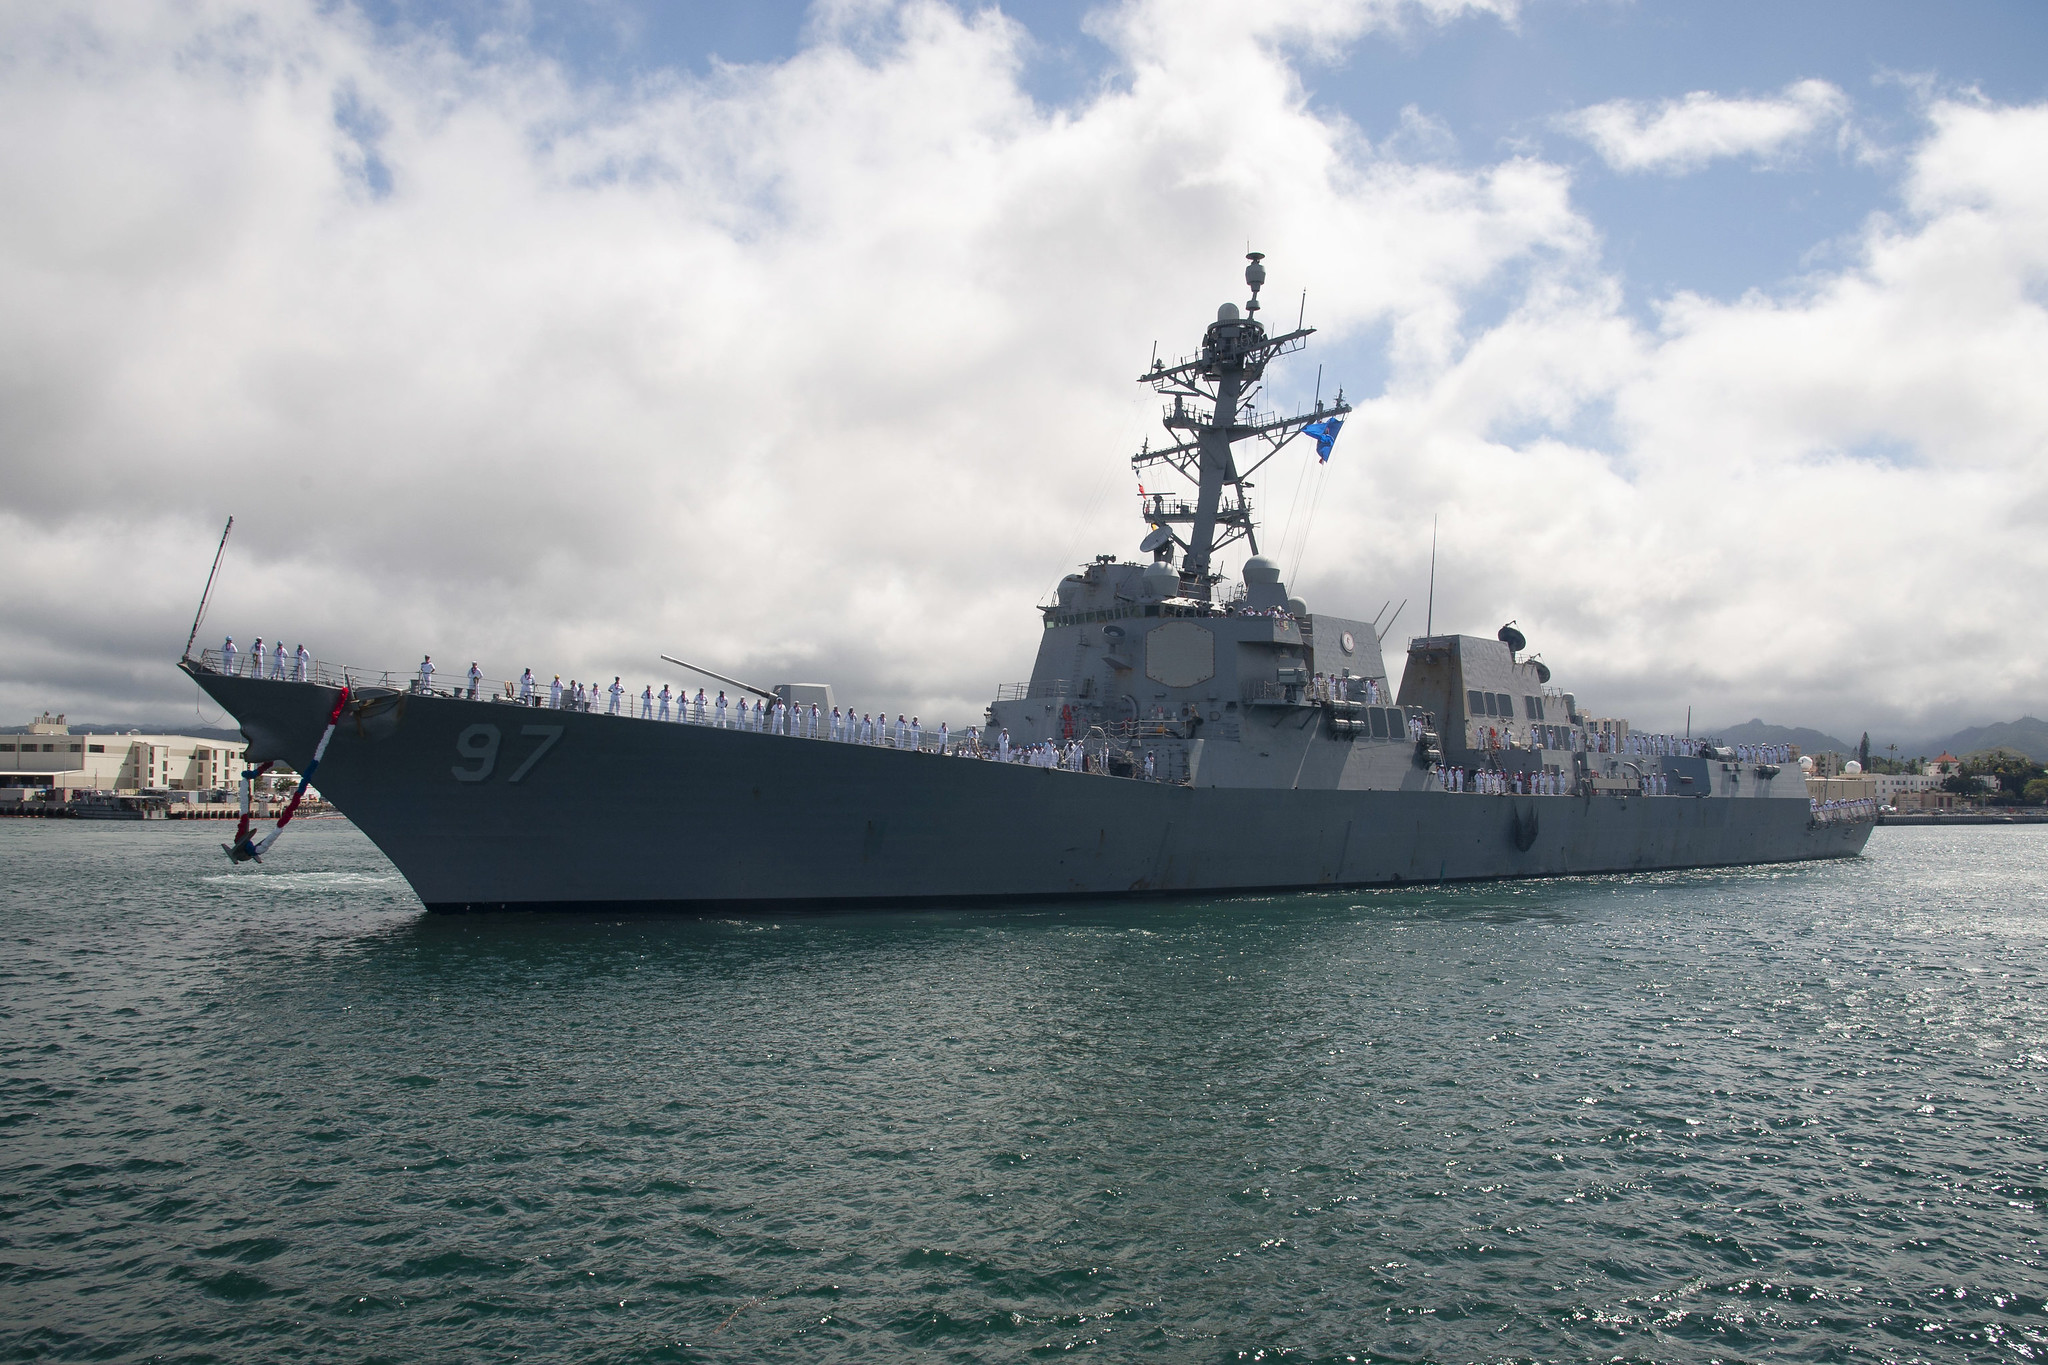 Uss Halsey Returns To Pearl Harbor After Deployment